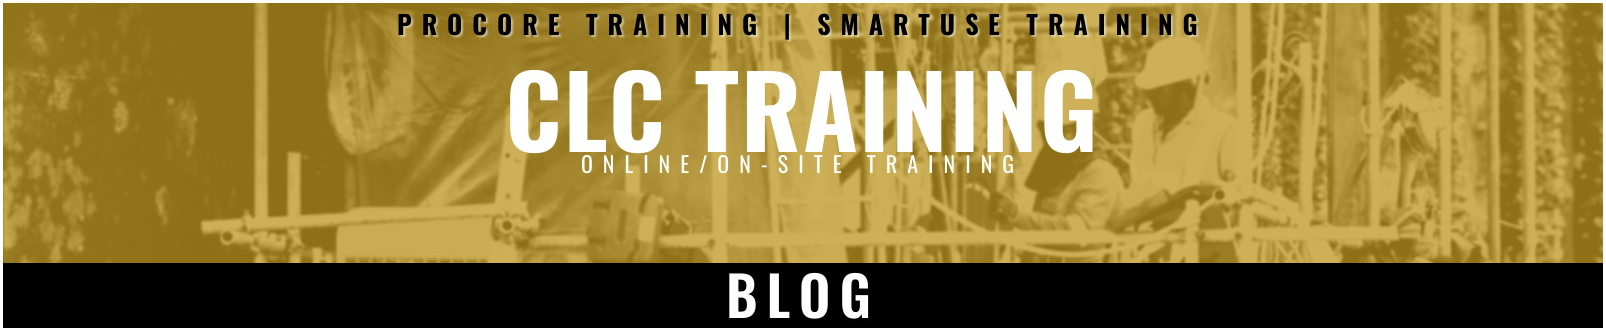 CLC Training | Blog